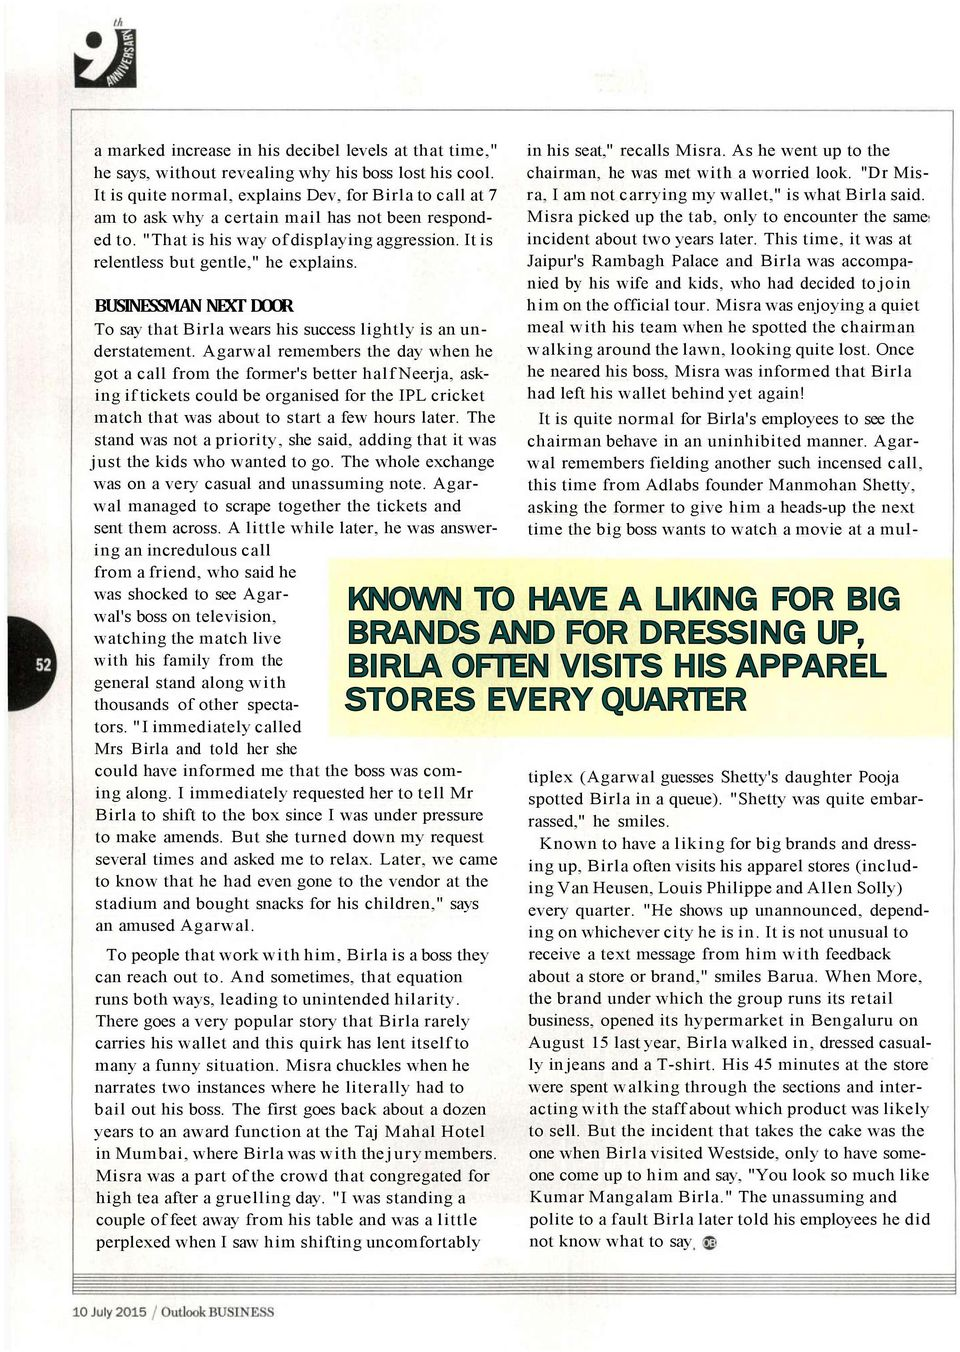 BUSINESSMAN NEXT DOOR To say that Birla wears his success lightly is an understatement.